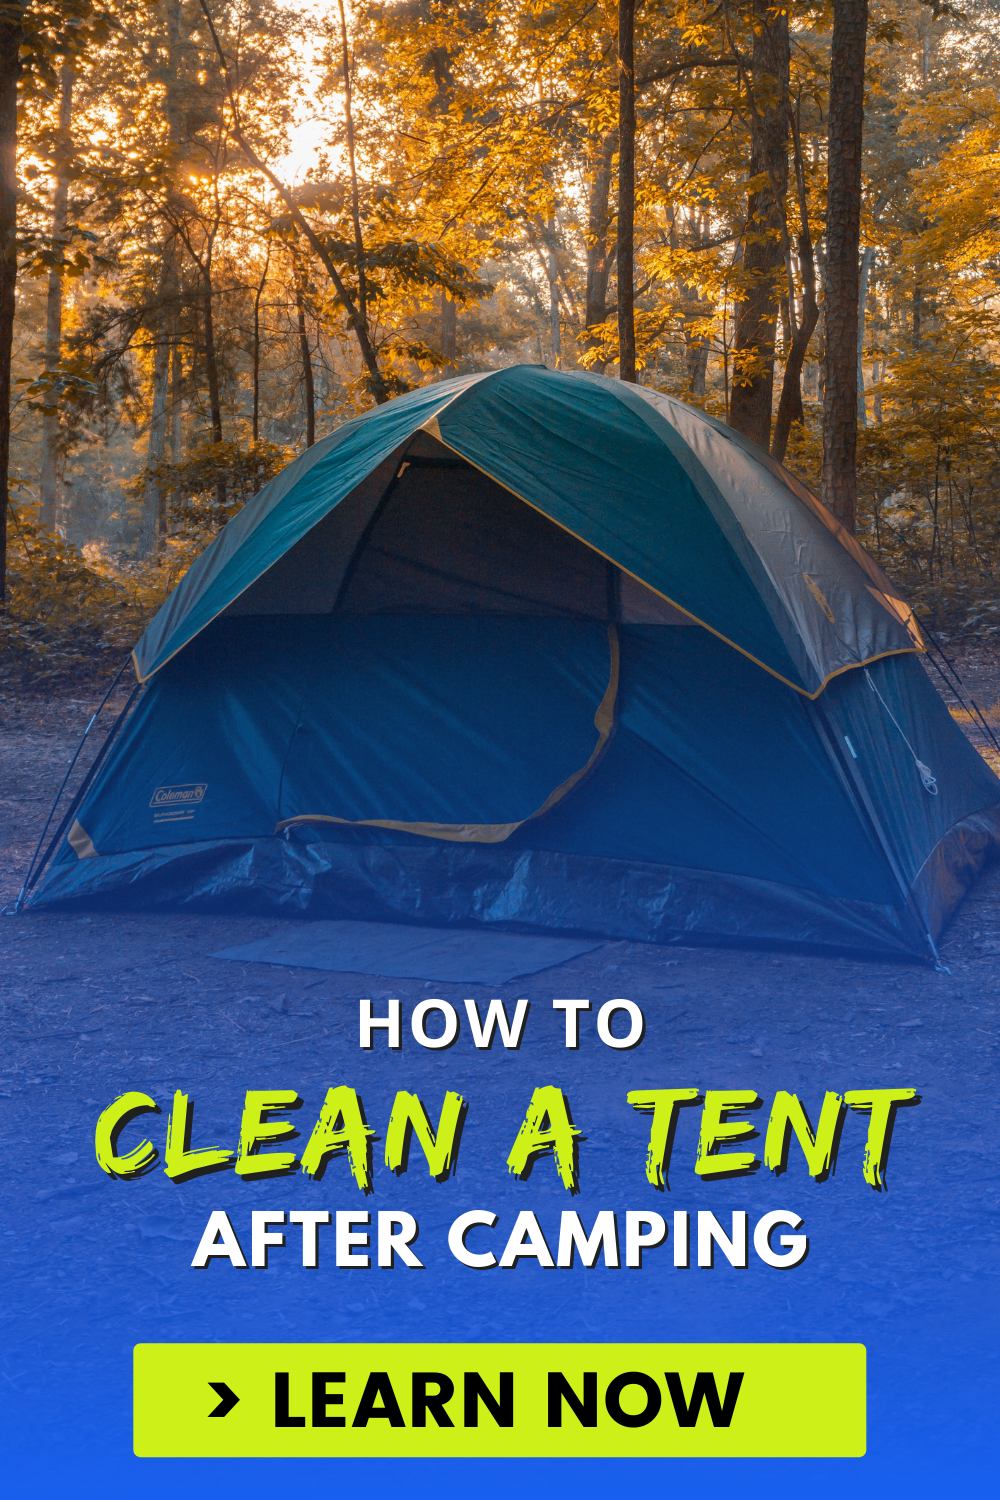 How to Clean a Tent After Camping